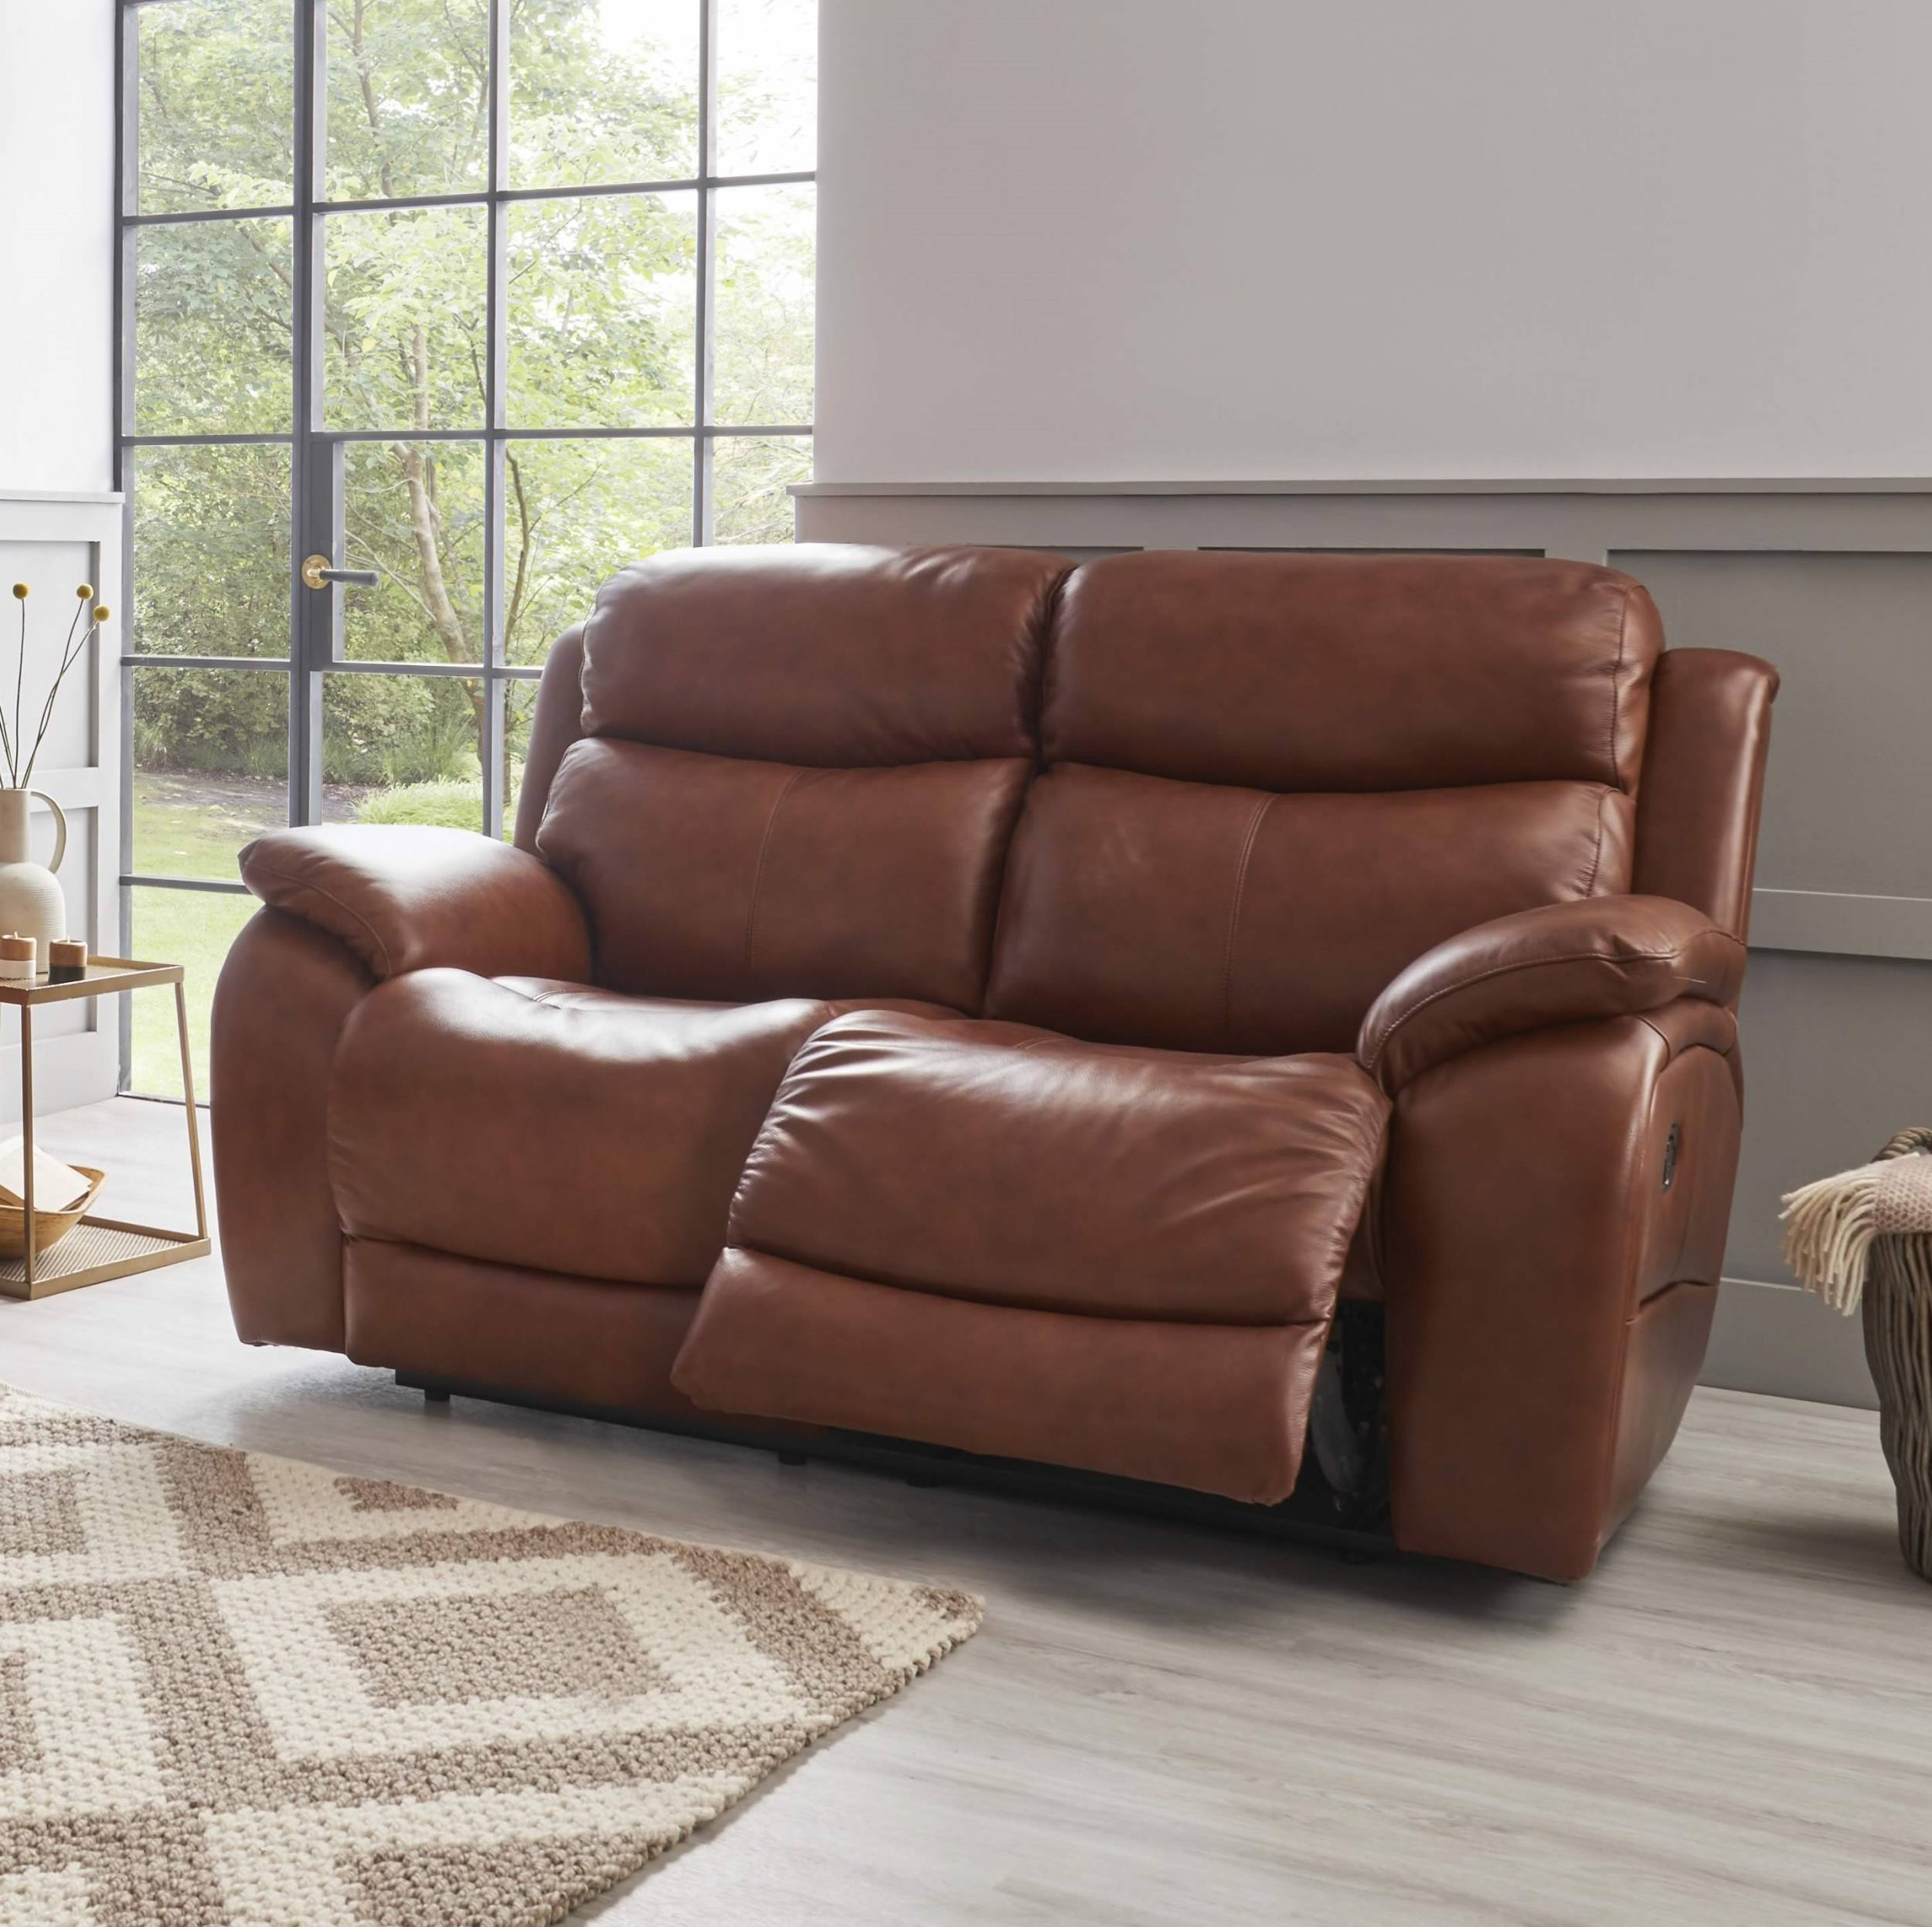 La Z Boy Ely 2 Seater Manual Recliner Sofa – Fabric Throughout Manual Reclining Sofas (View 2 of 11)